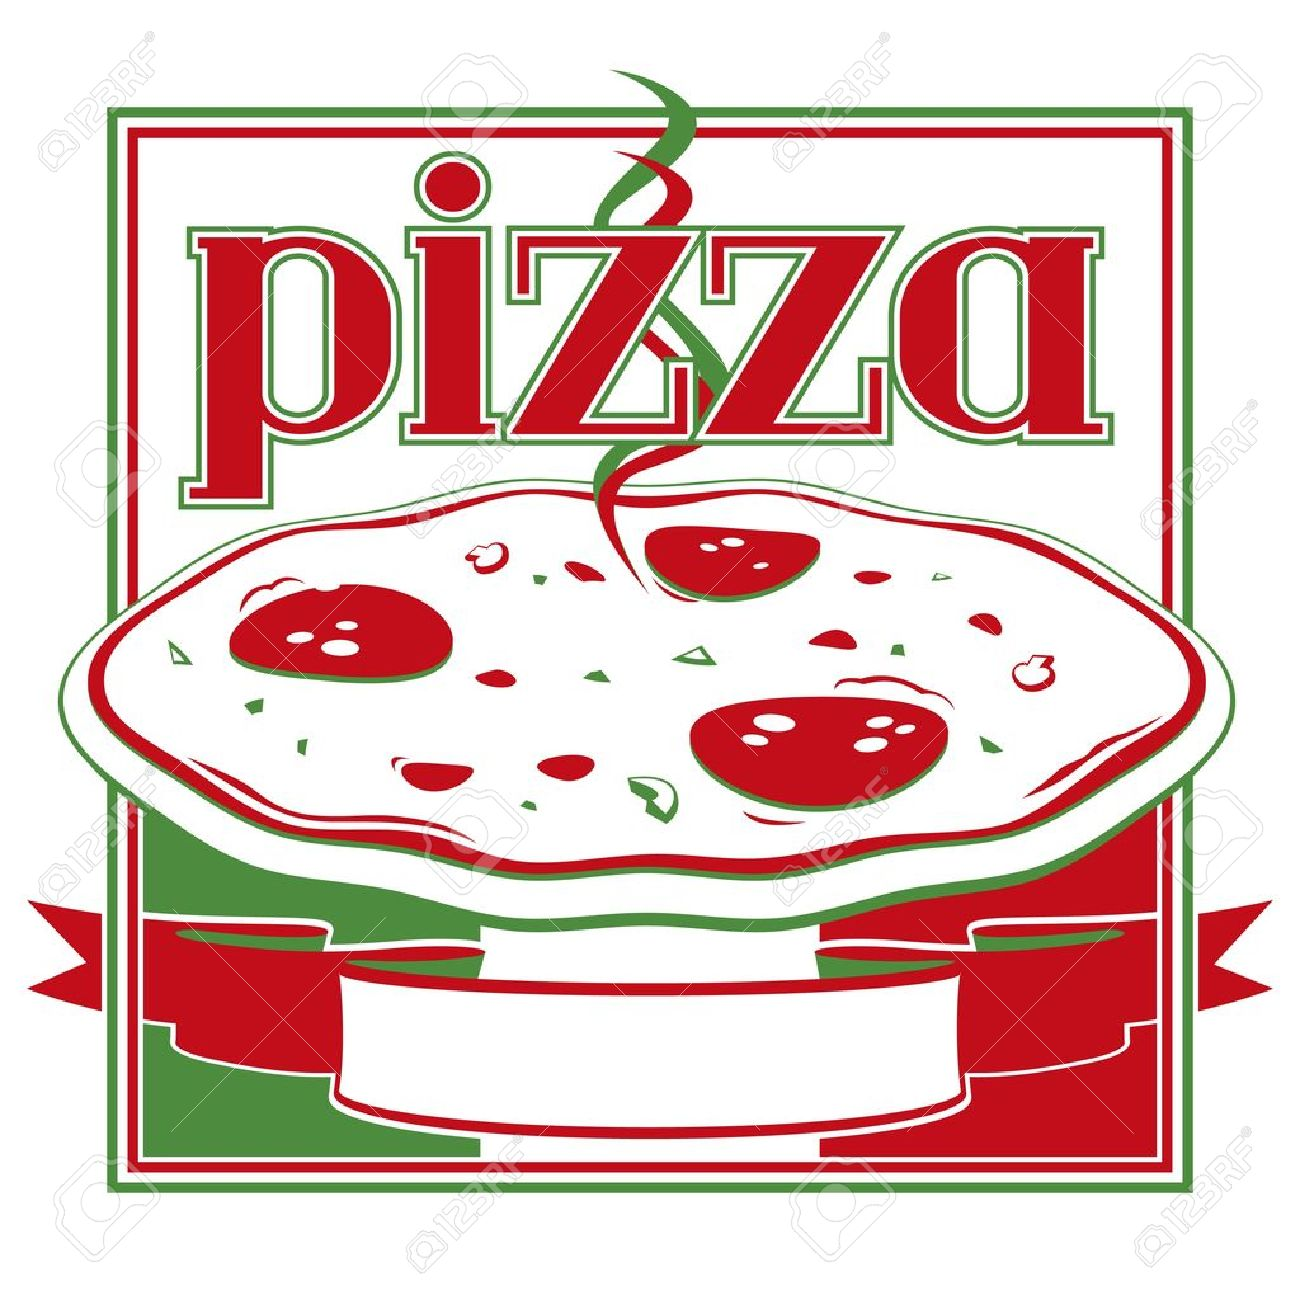 Italian red and green pizza box cover design template - Vector Stock Vector - 11091337